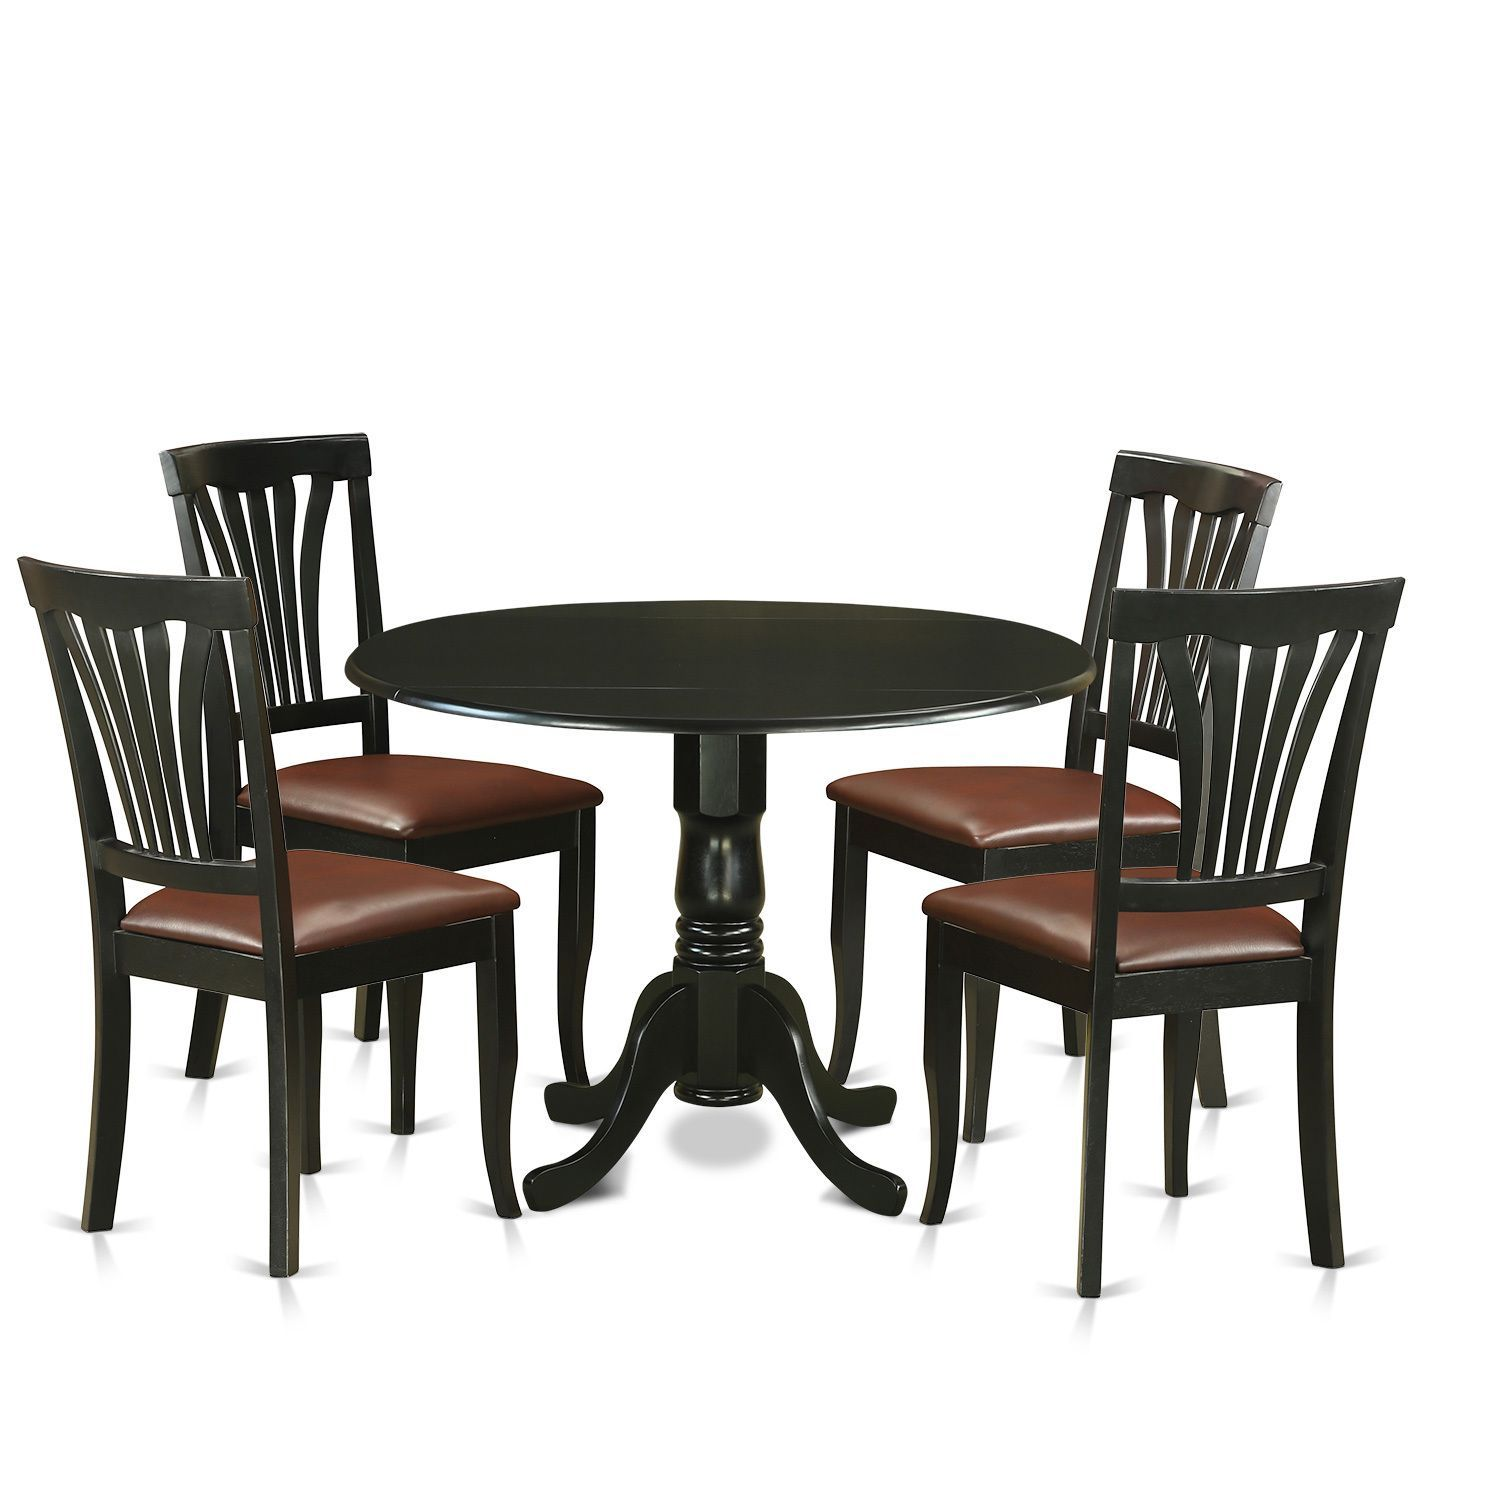 5-piece Dublin Kitchen Table Set with Dining Table and 4 Kitchen ...